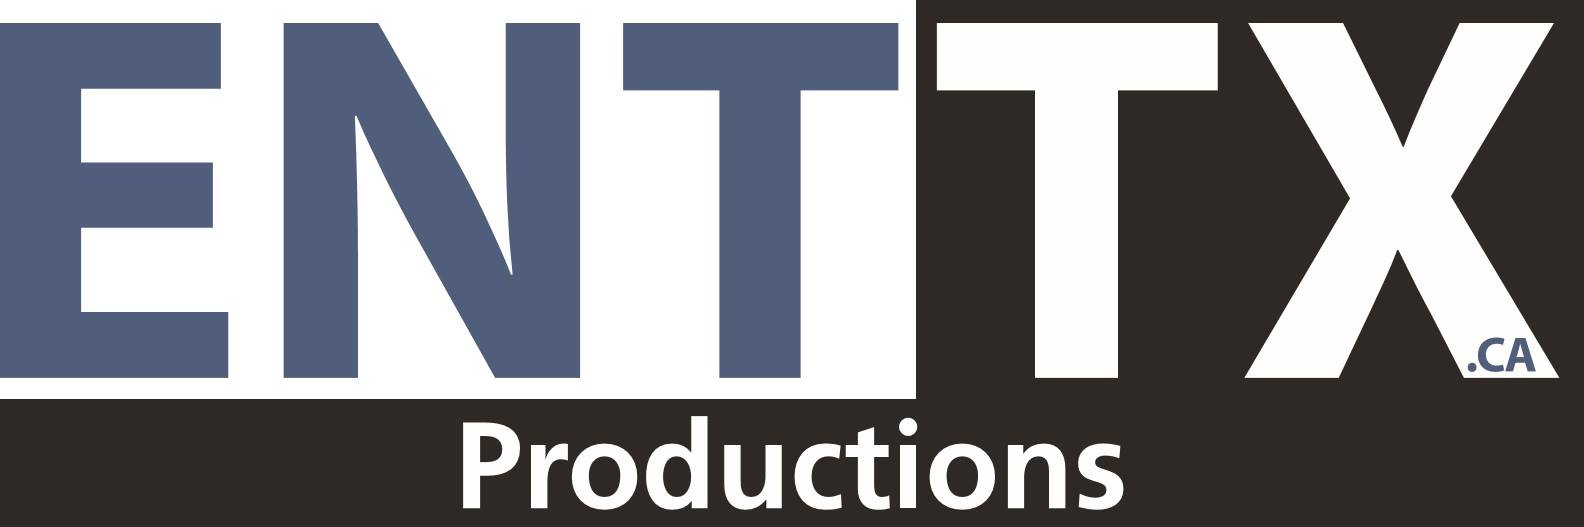 ENTTX Producrtions Inc.